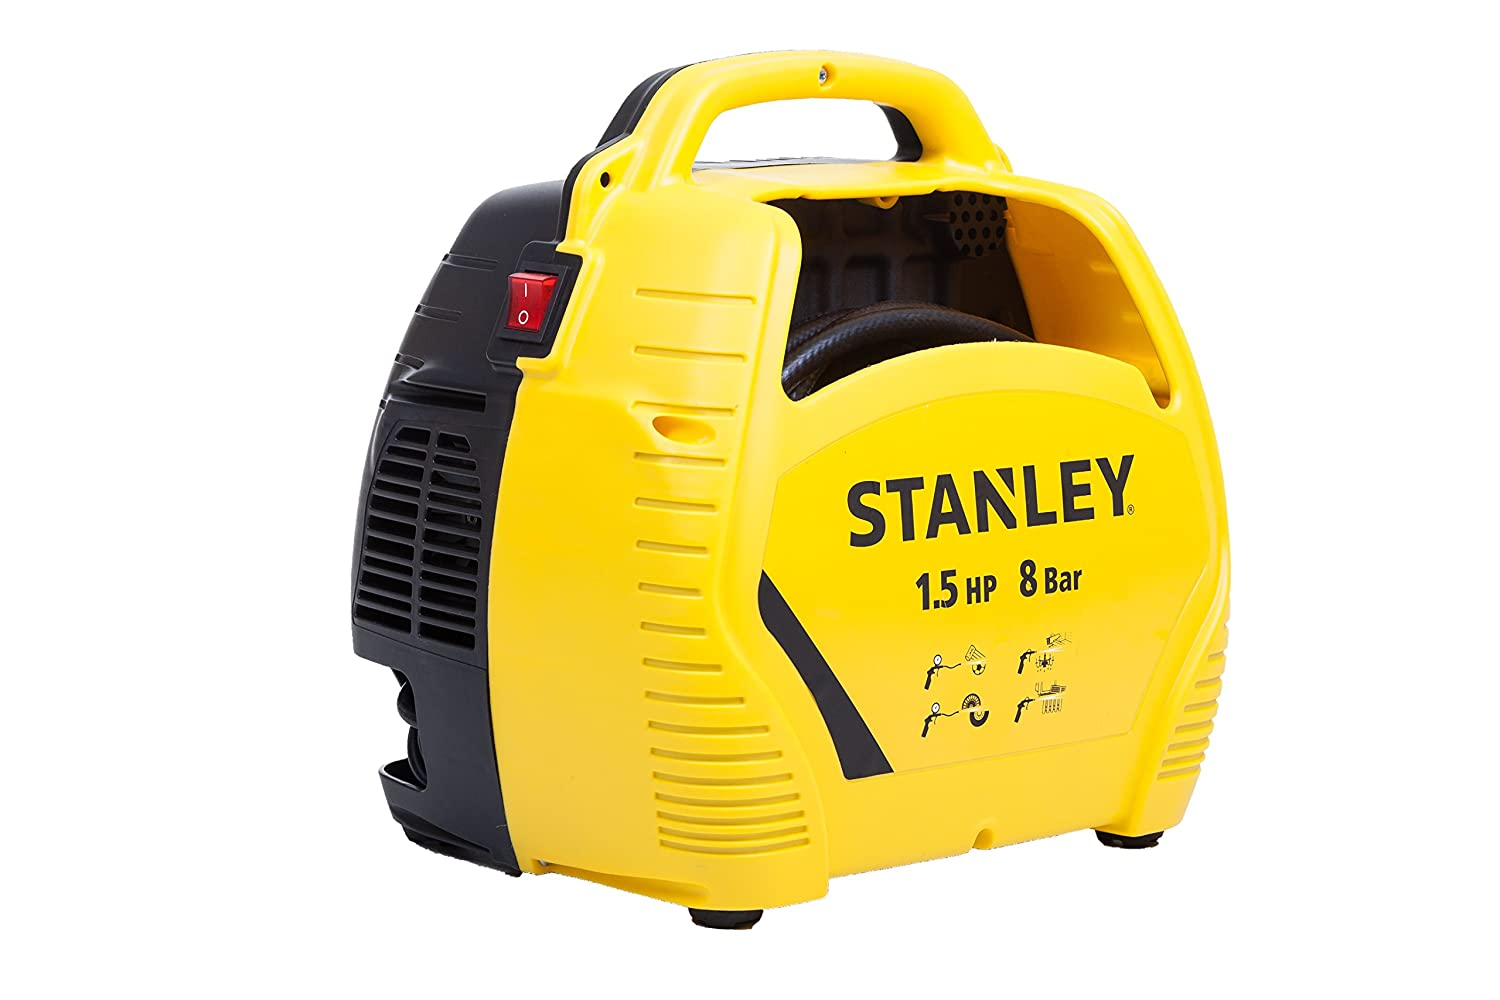 Stanley Portable Kit compresseur air comprimé Air Kit, 1868 Mecafer